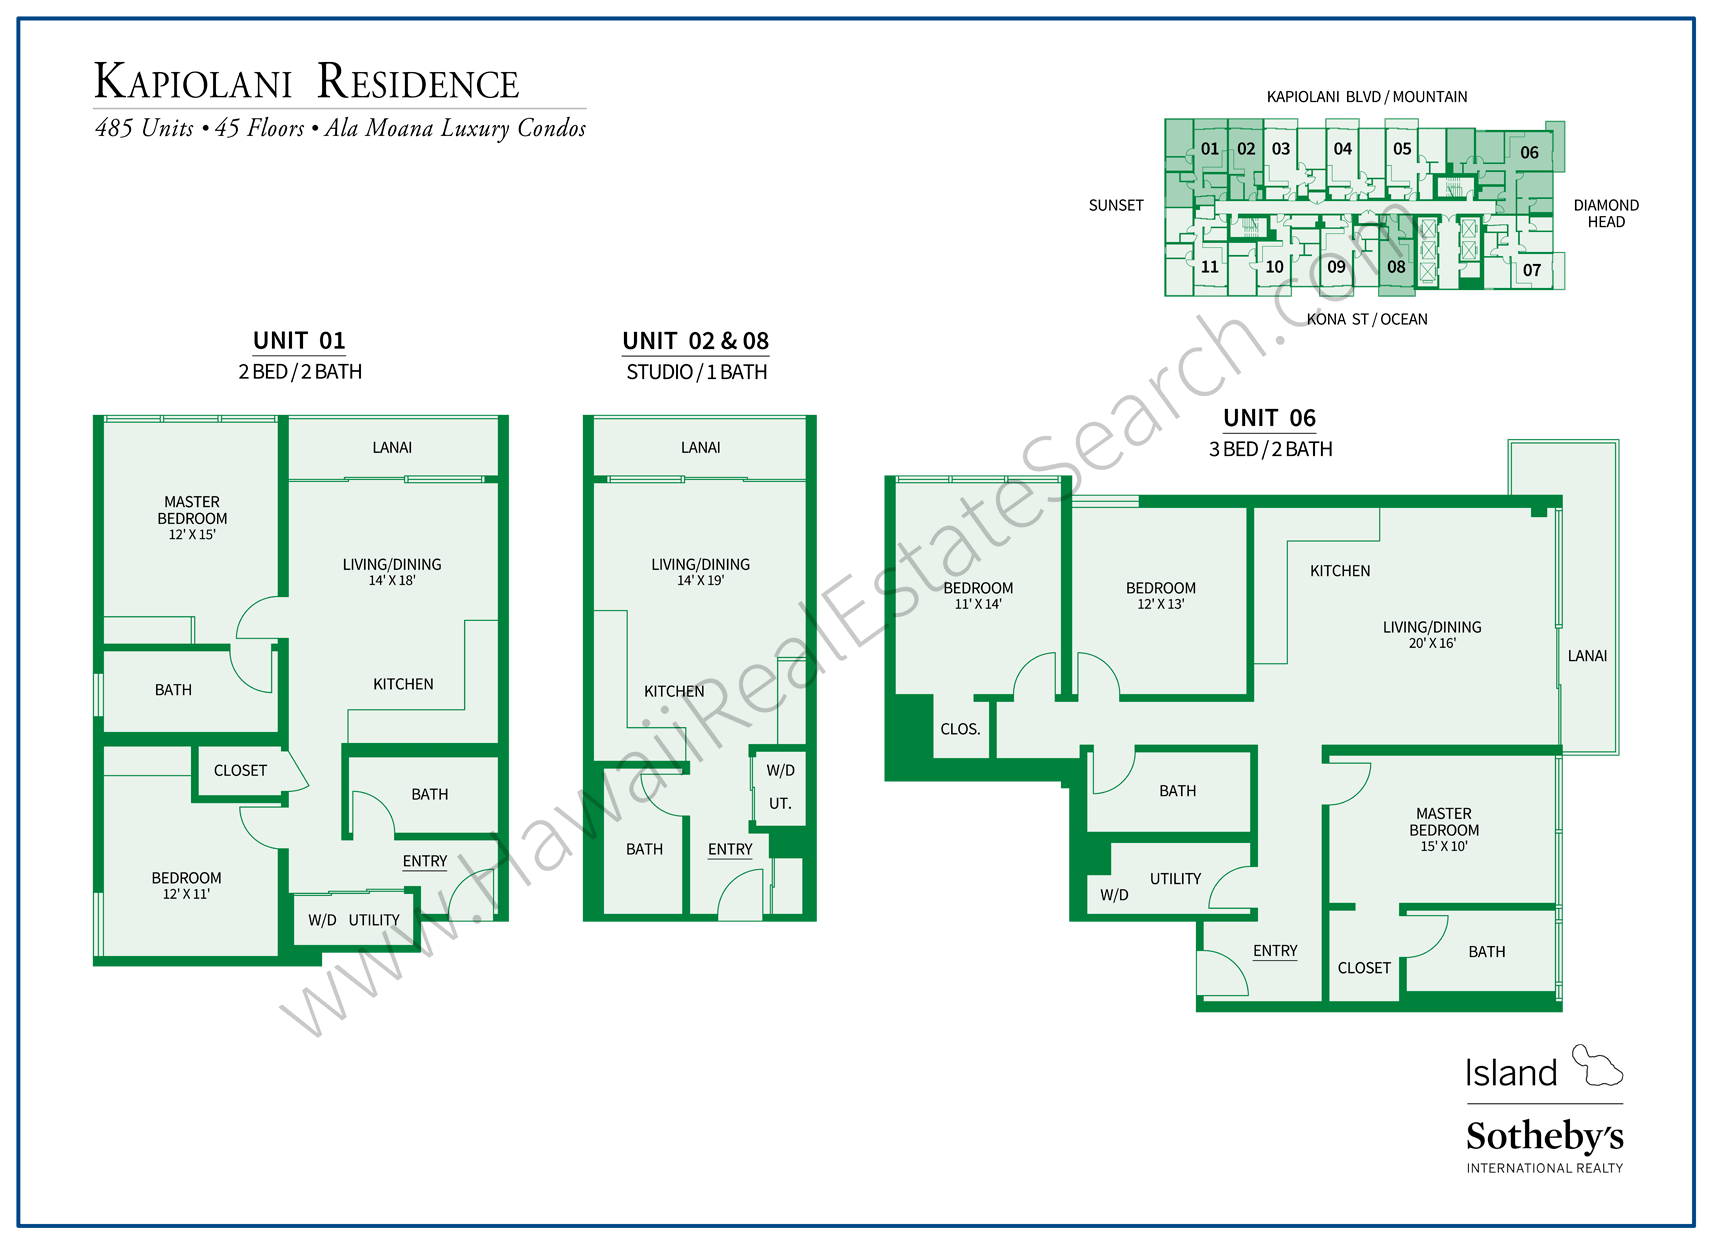 Kapiolani Residence Floor Plans Updated